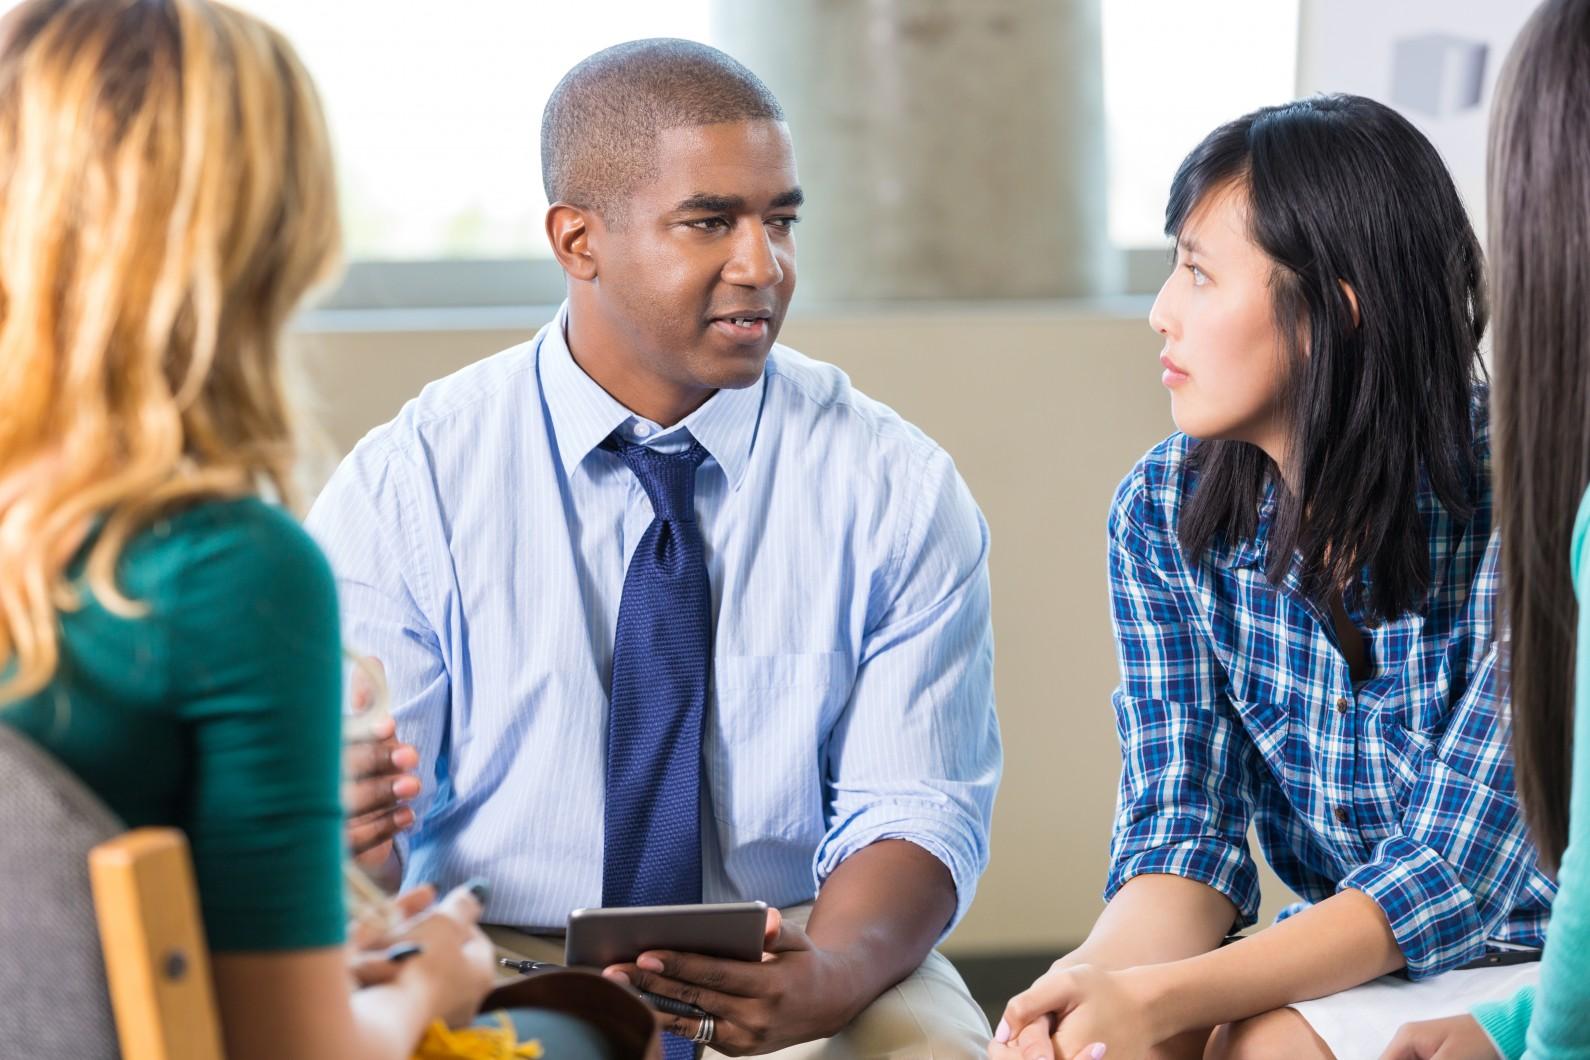 Mid adult African American man talks with patients in group therapy session. A young Hispanic and a young Asian woman listen intently to him as he speaks. He is taking notes on a digital tablet. The women are casually dressed. The man is wearing a light blue button down shirt and a tie.